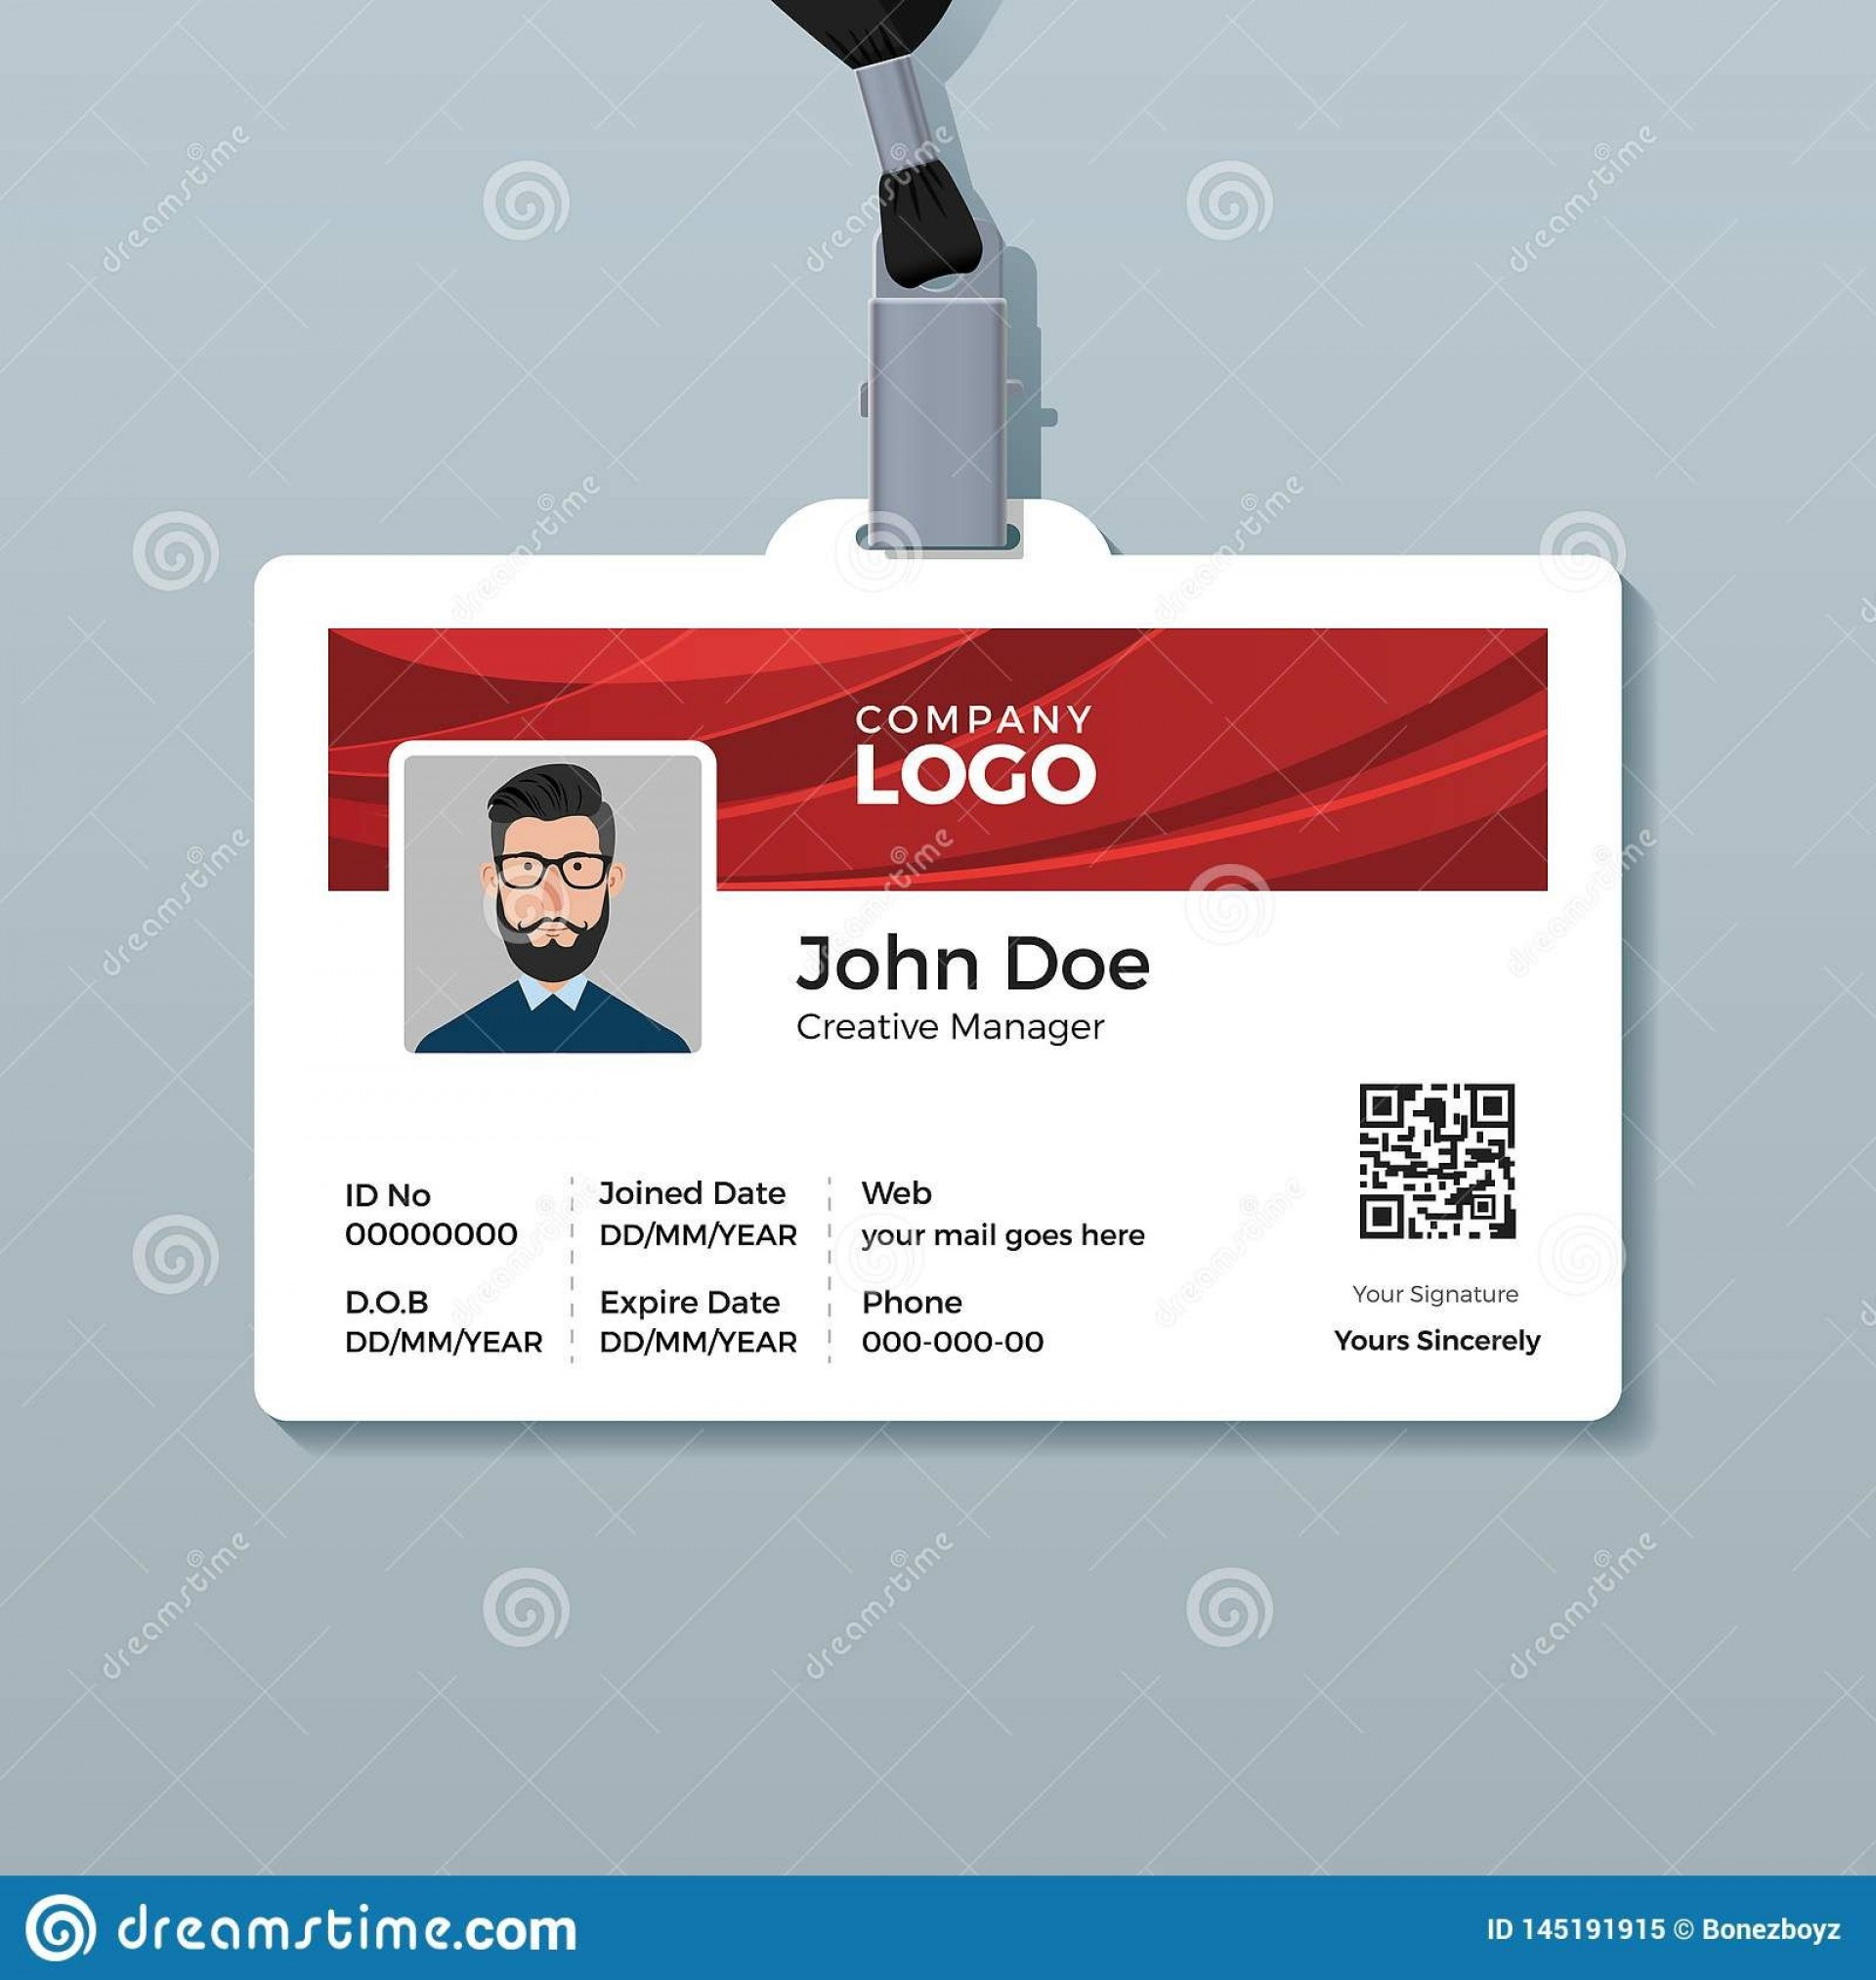 006 Incredible Id Card Template Free Download Concept  Design Photoshop Identity Student Word1920